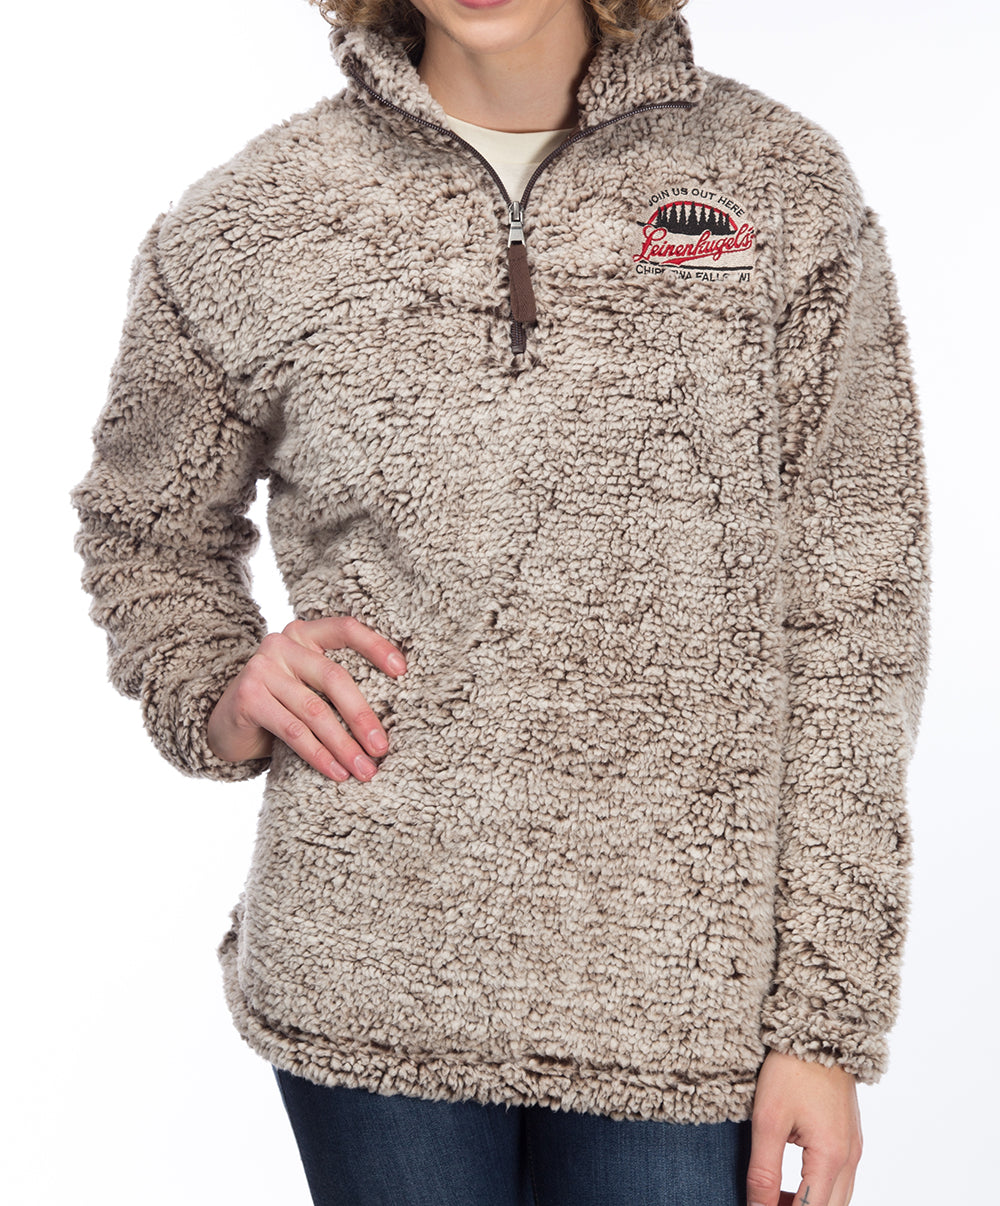 SHERPA QTR ZIP PULLOVER